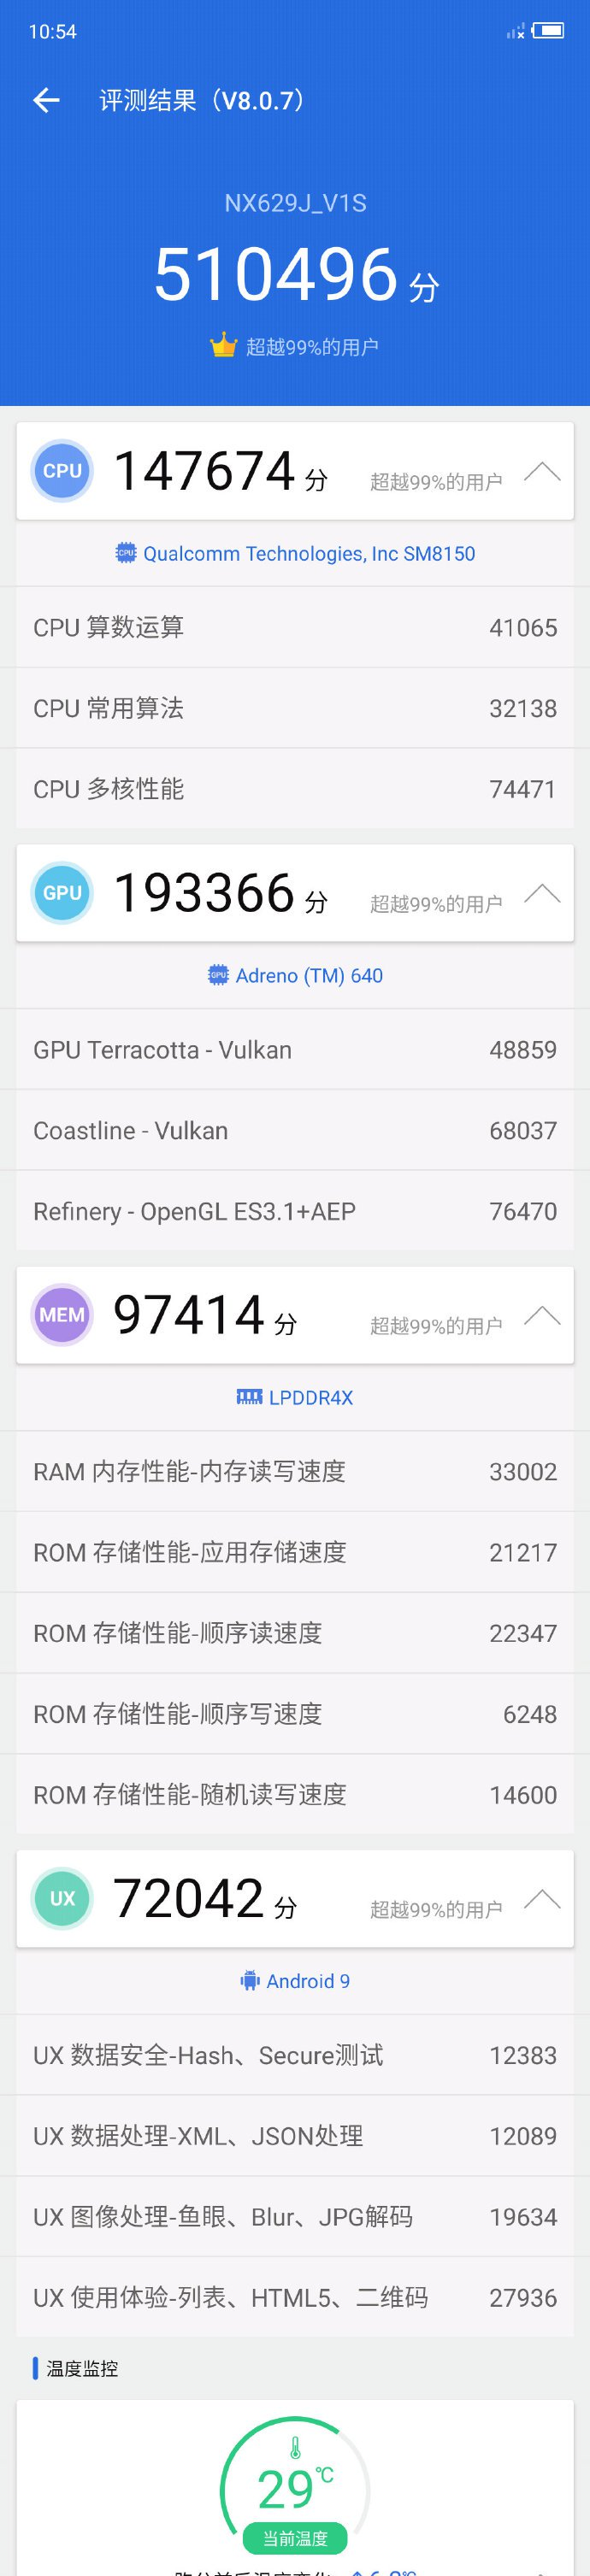 Red Magic 3S records highest AnTuTu score of 510,496 with SD855+ and 12GB RAM